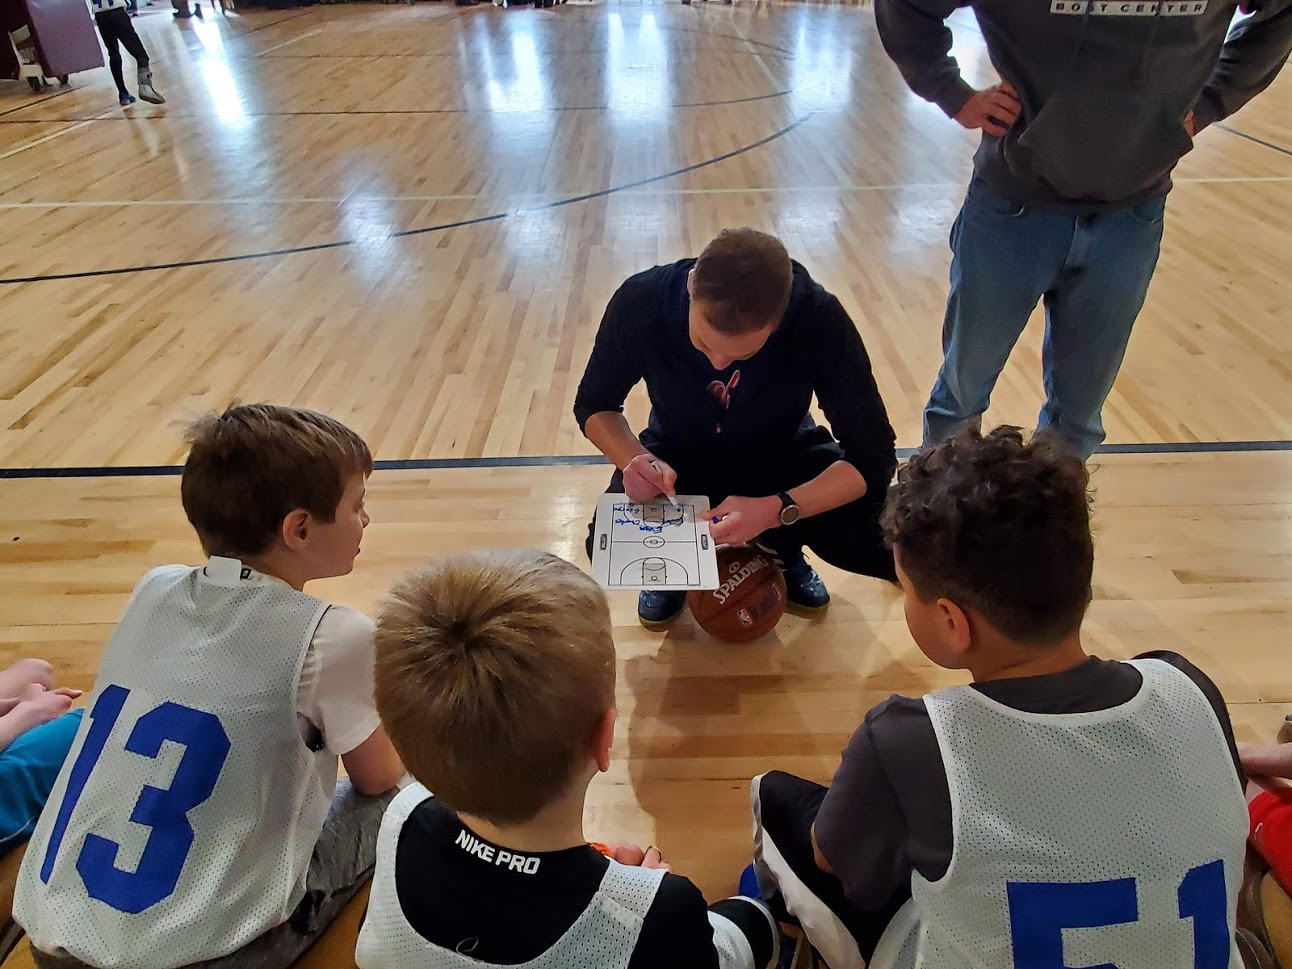 Coach drawing up a play